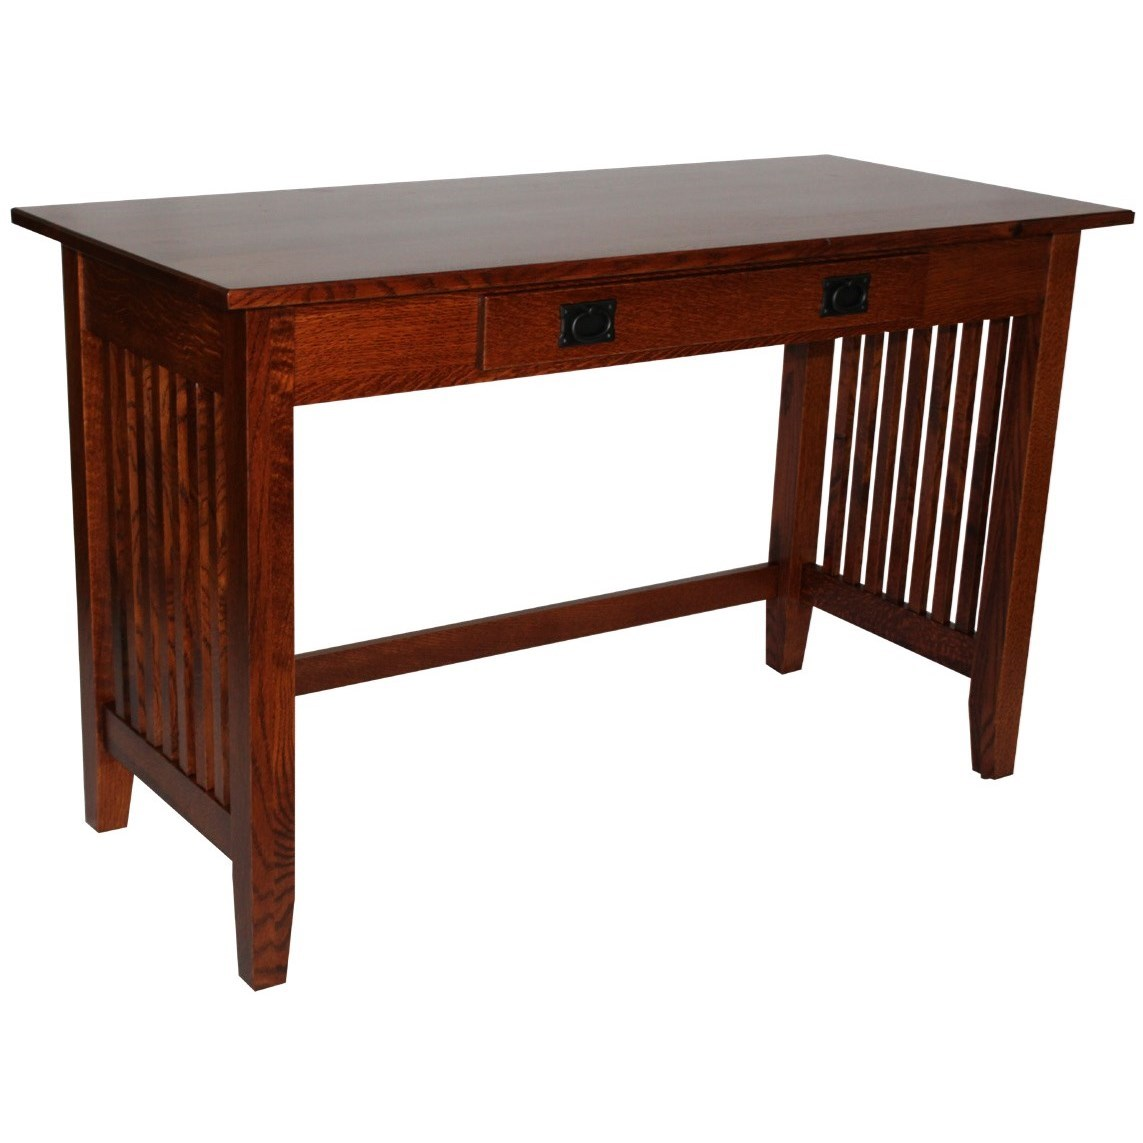 Prairie Mission Customizable Solid Wood Console Table by Ashery Woodworking at Saugerties Furniture Mart